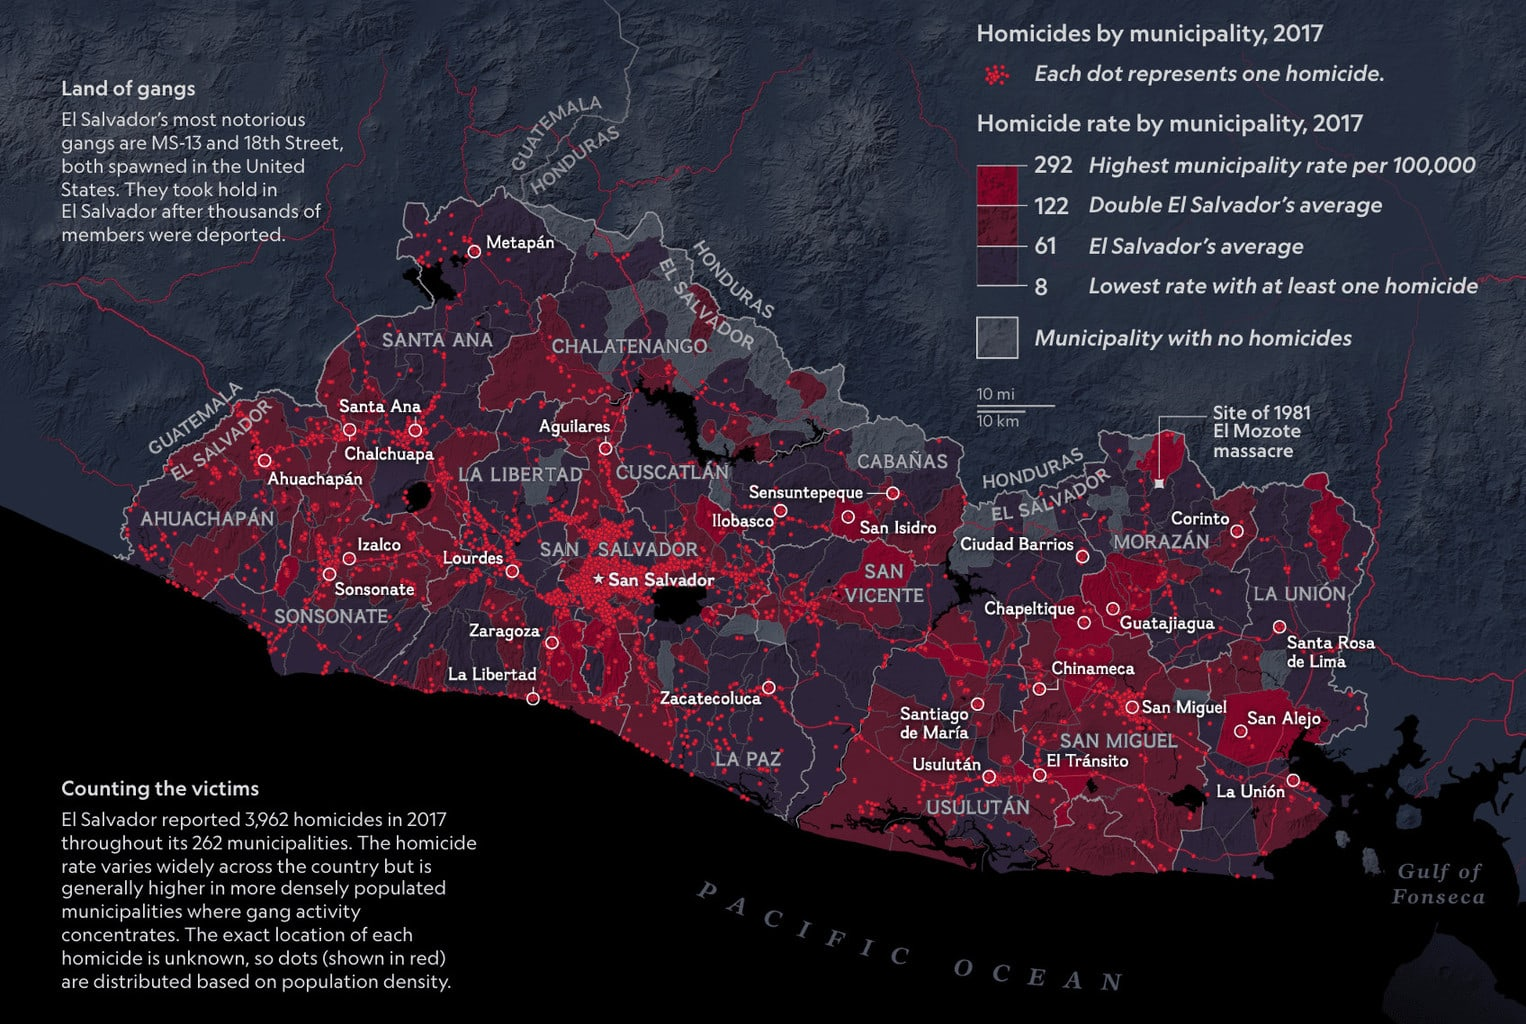 Homicide rate in El Salvador. Source: National Geographic